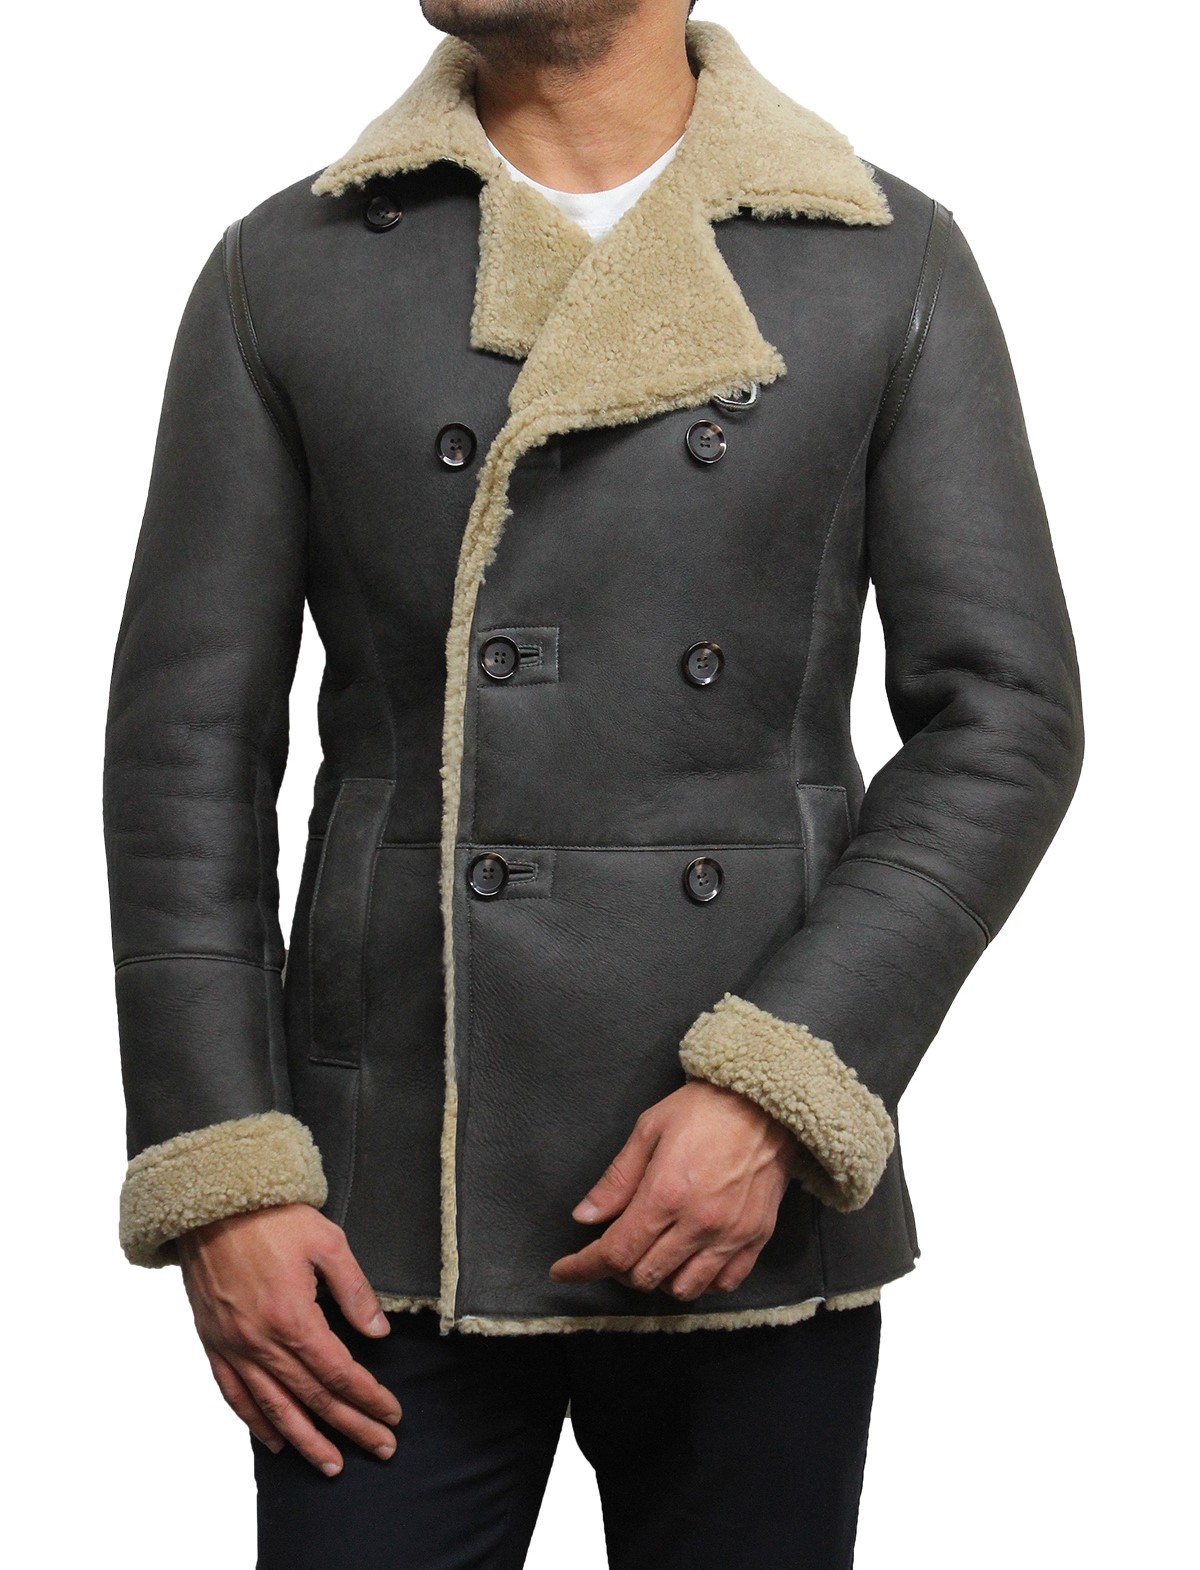 Leather Jackets and Sheepskin Coats for Men and Women in UK ...